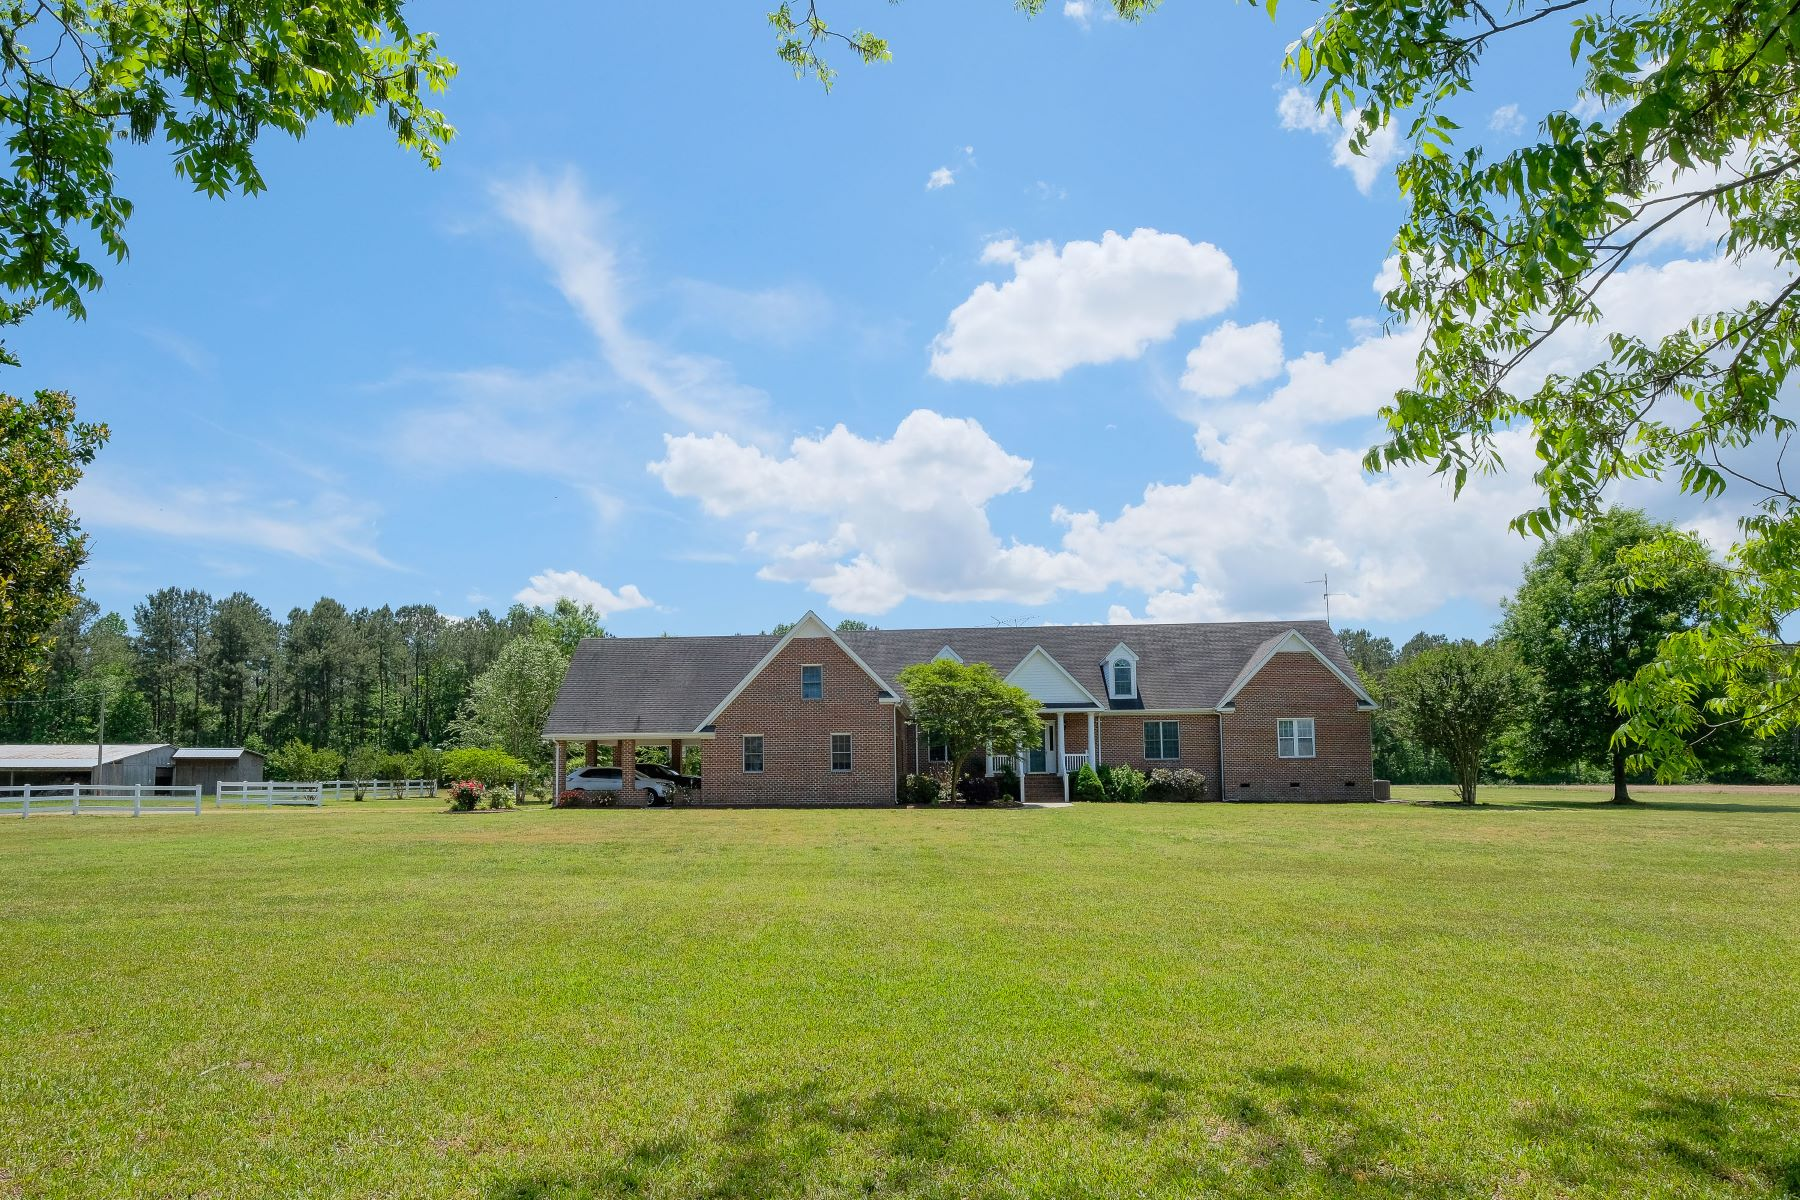 Single Family Homes for Sale at THE HUSH OF COUNTRY LIVING 432 Icaria Rd Tyner, North Carolina 27980 United States